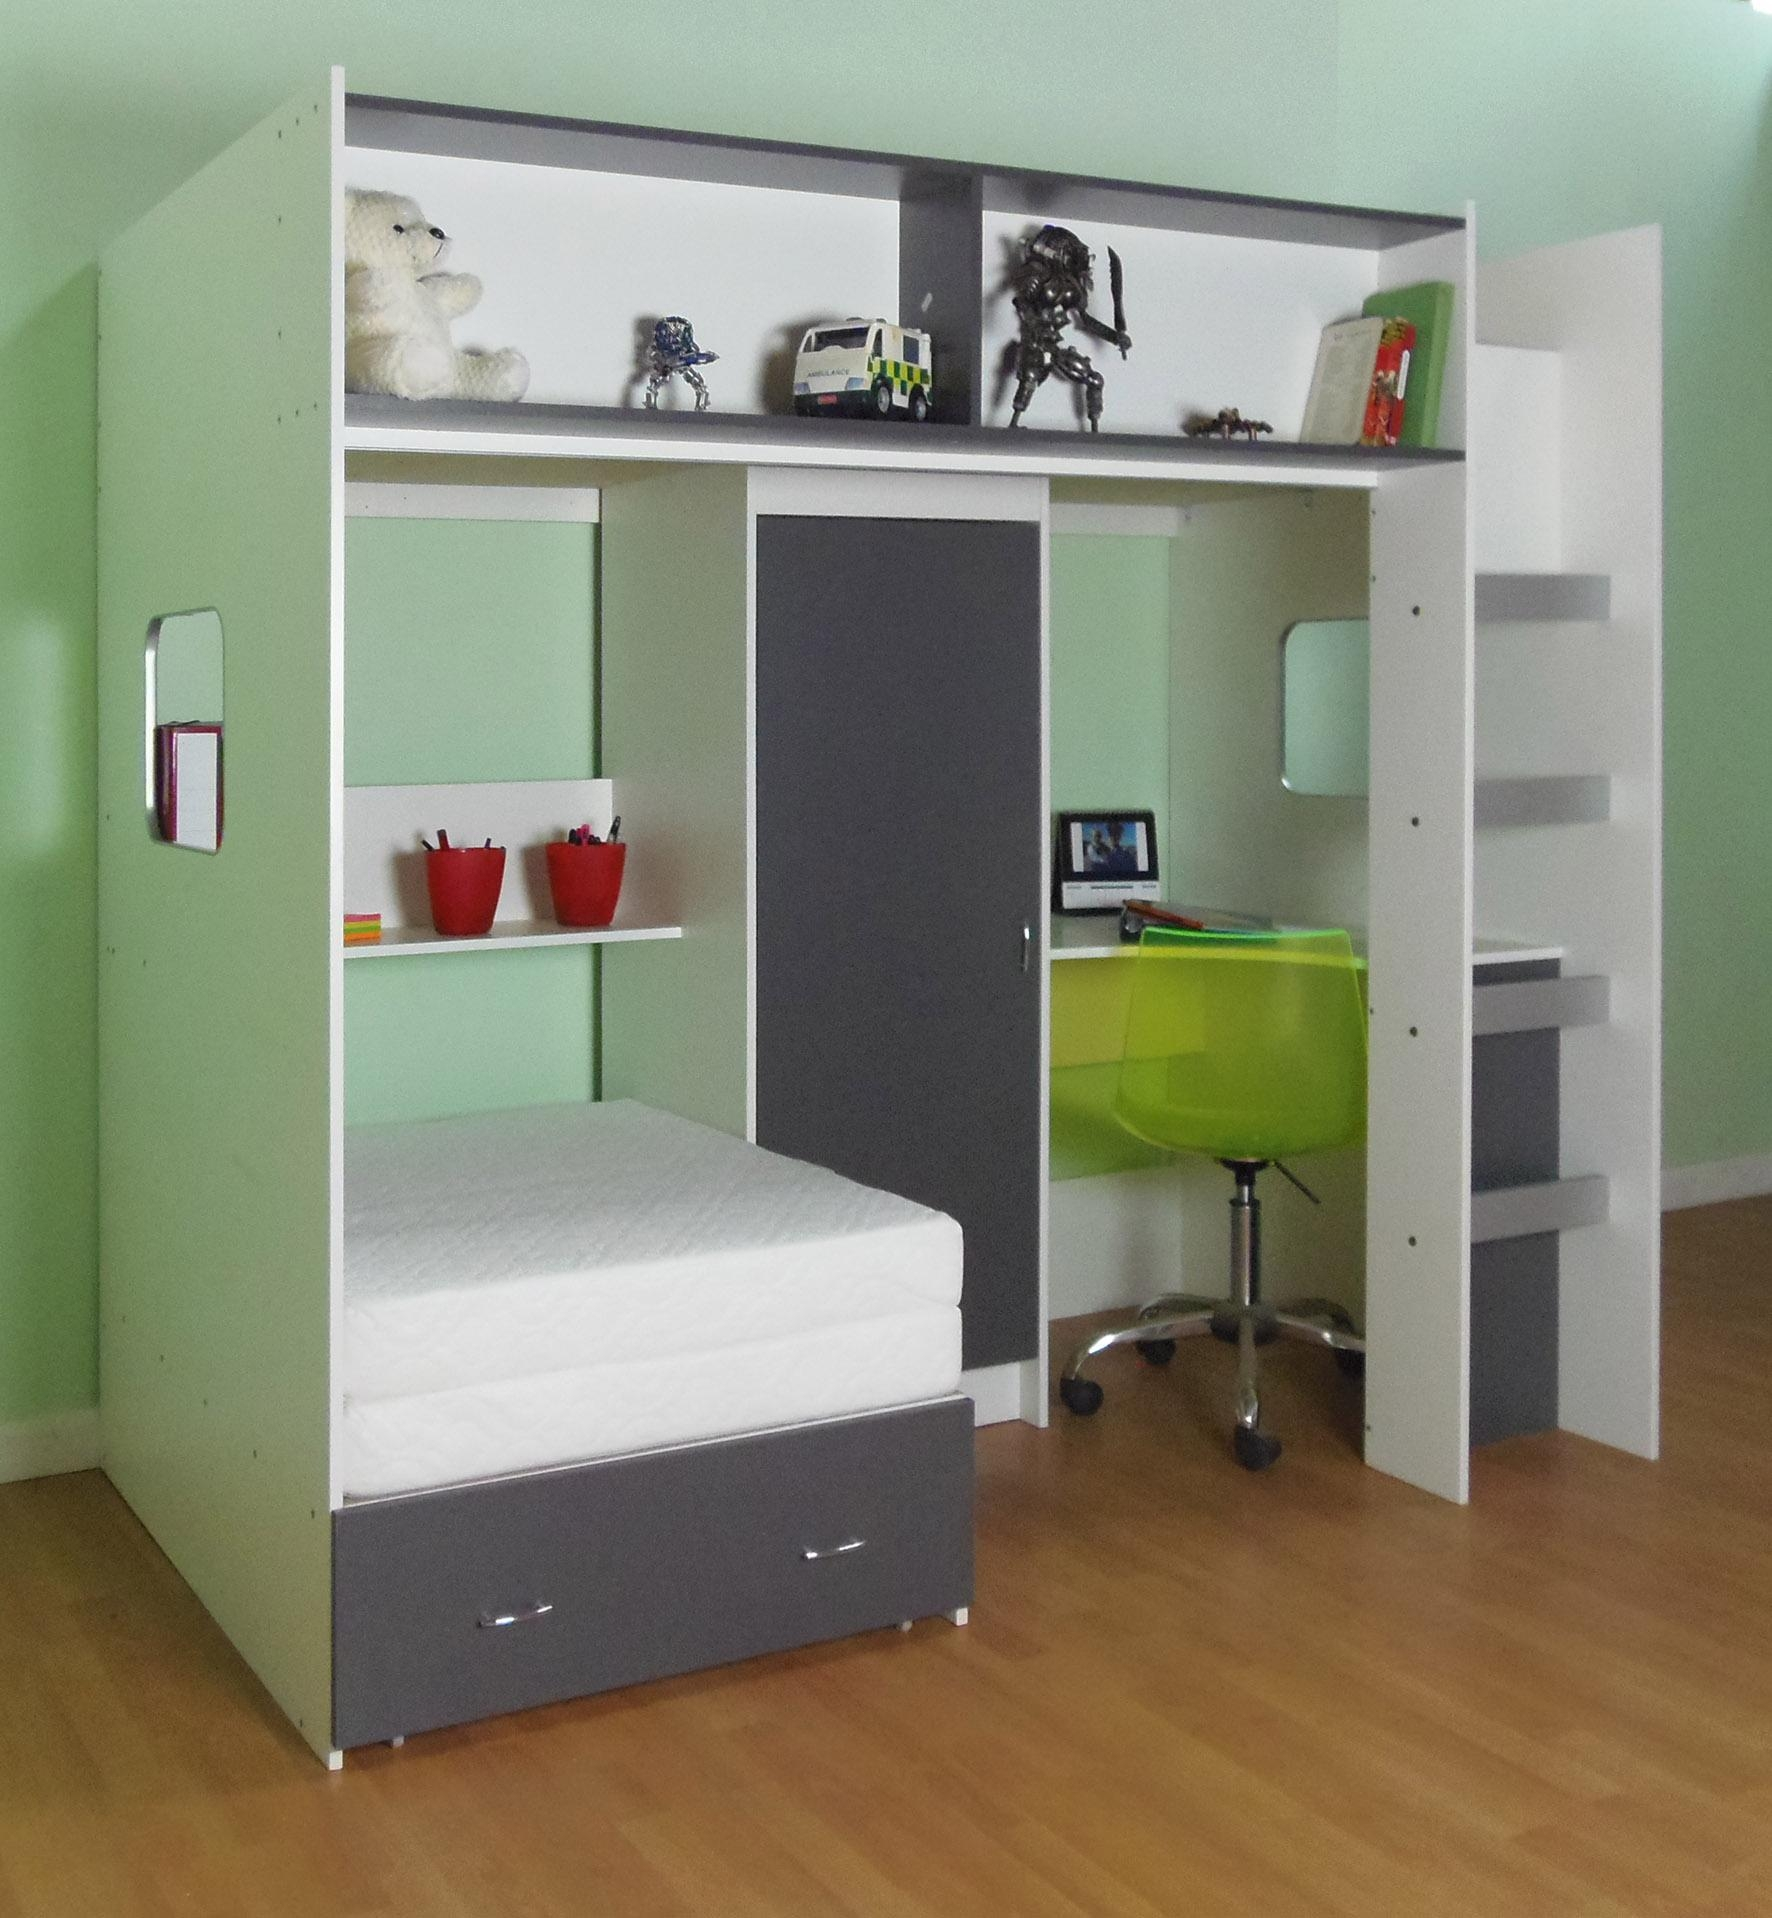 Elegant Green Bedroom Decor With Custom High Beds With Trundle Inside High Sleeper With Desk And Sofa Bed (Image 3 of 20)